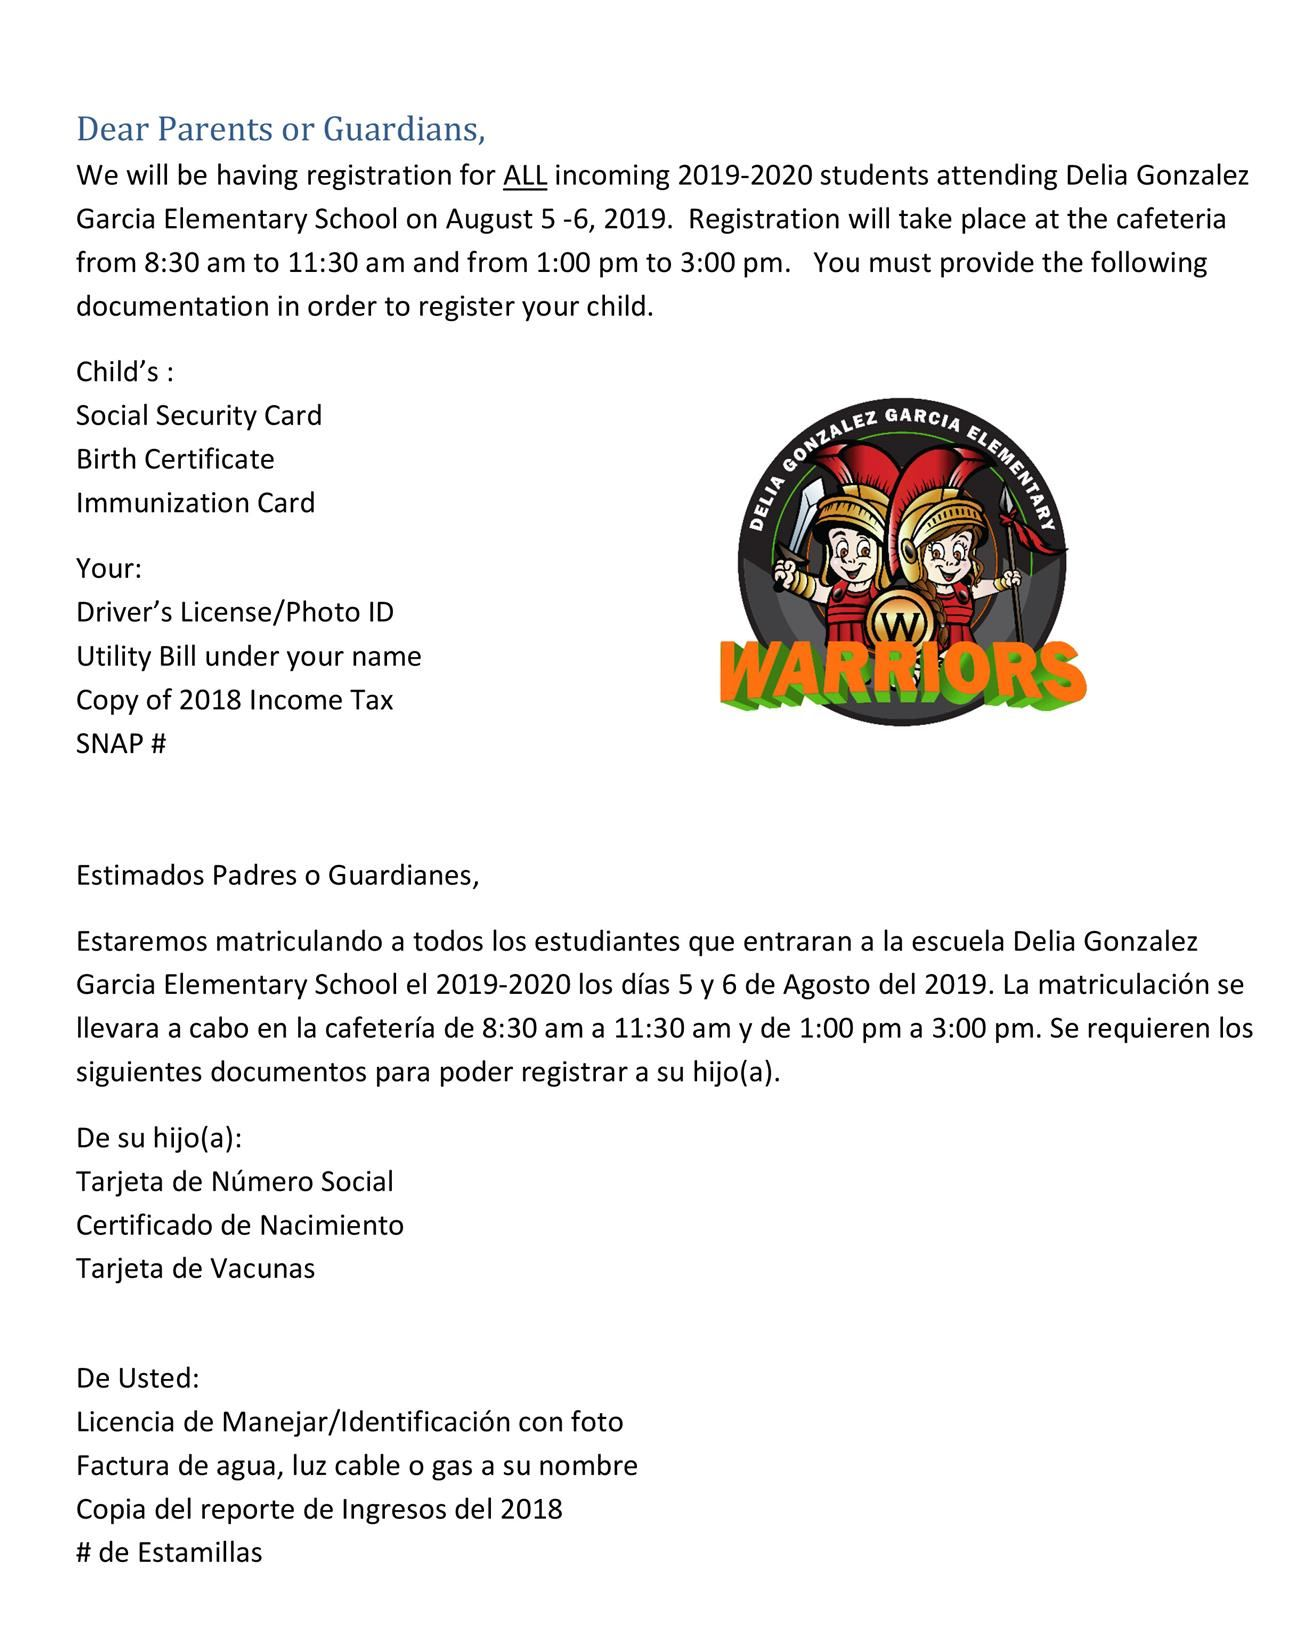 Back to School Information / Delia Gonzalez Garcia Elementary